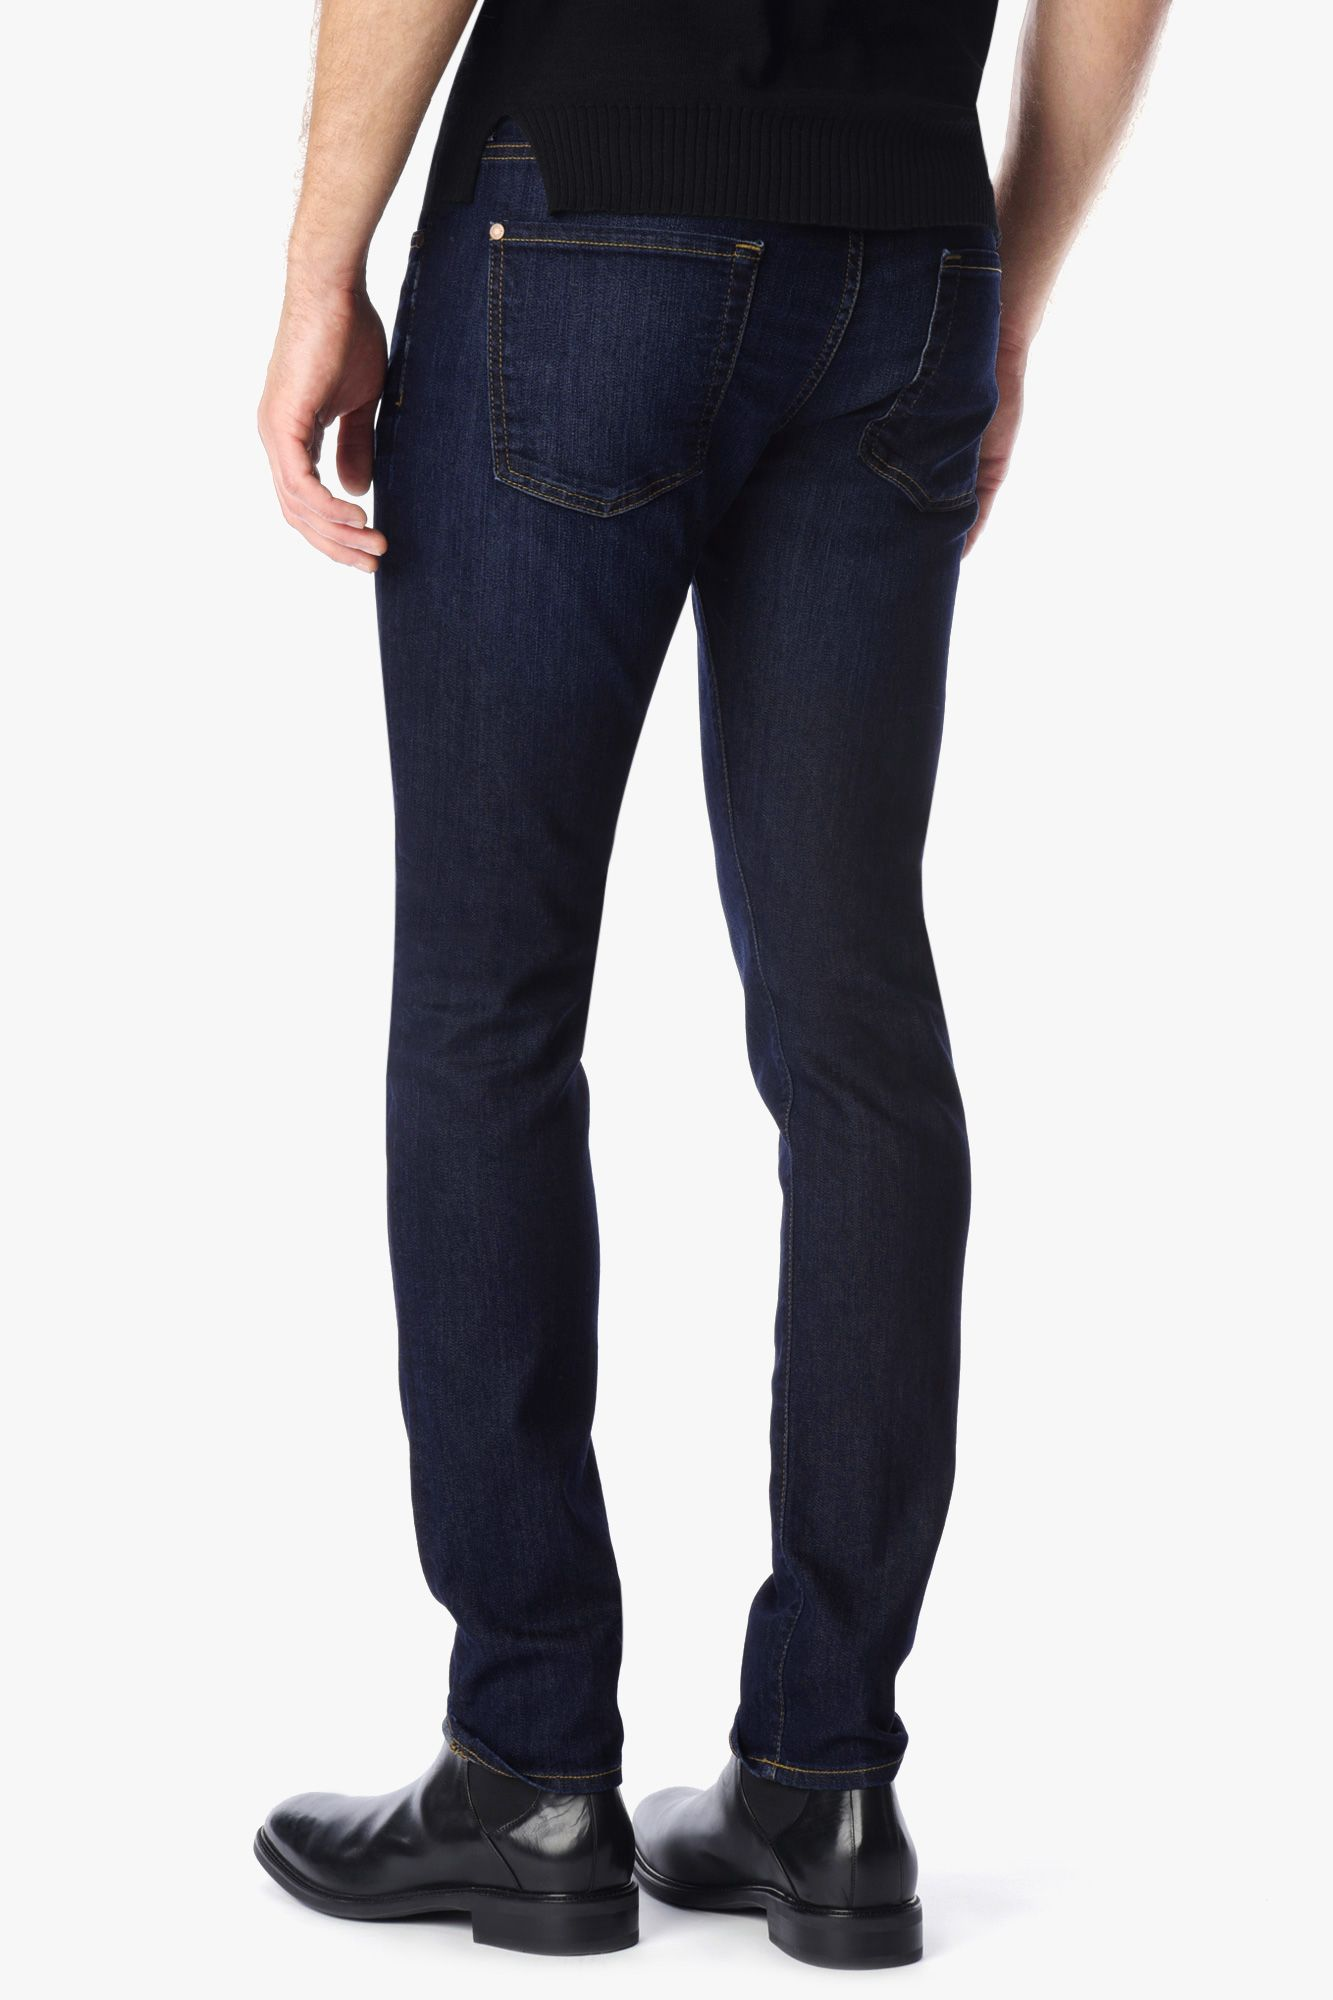 AirWeft Denim Paxtyn Skinny With Clean Pocket in Commotion